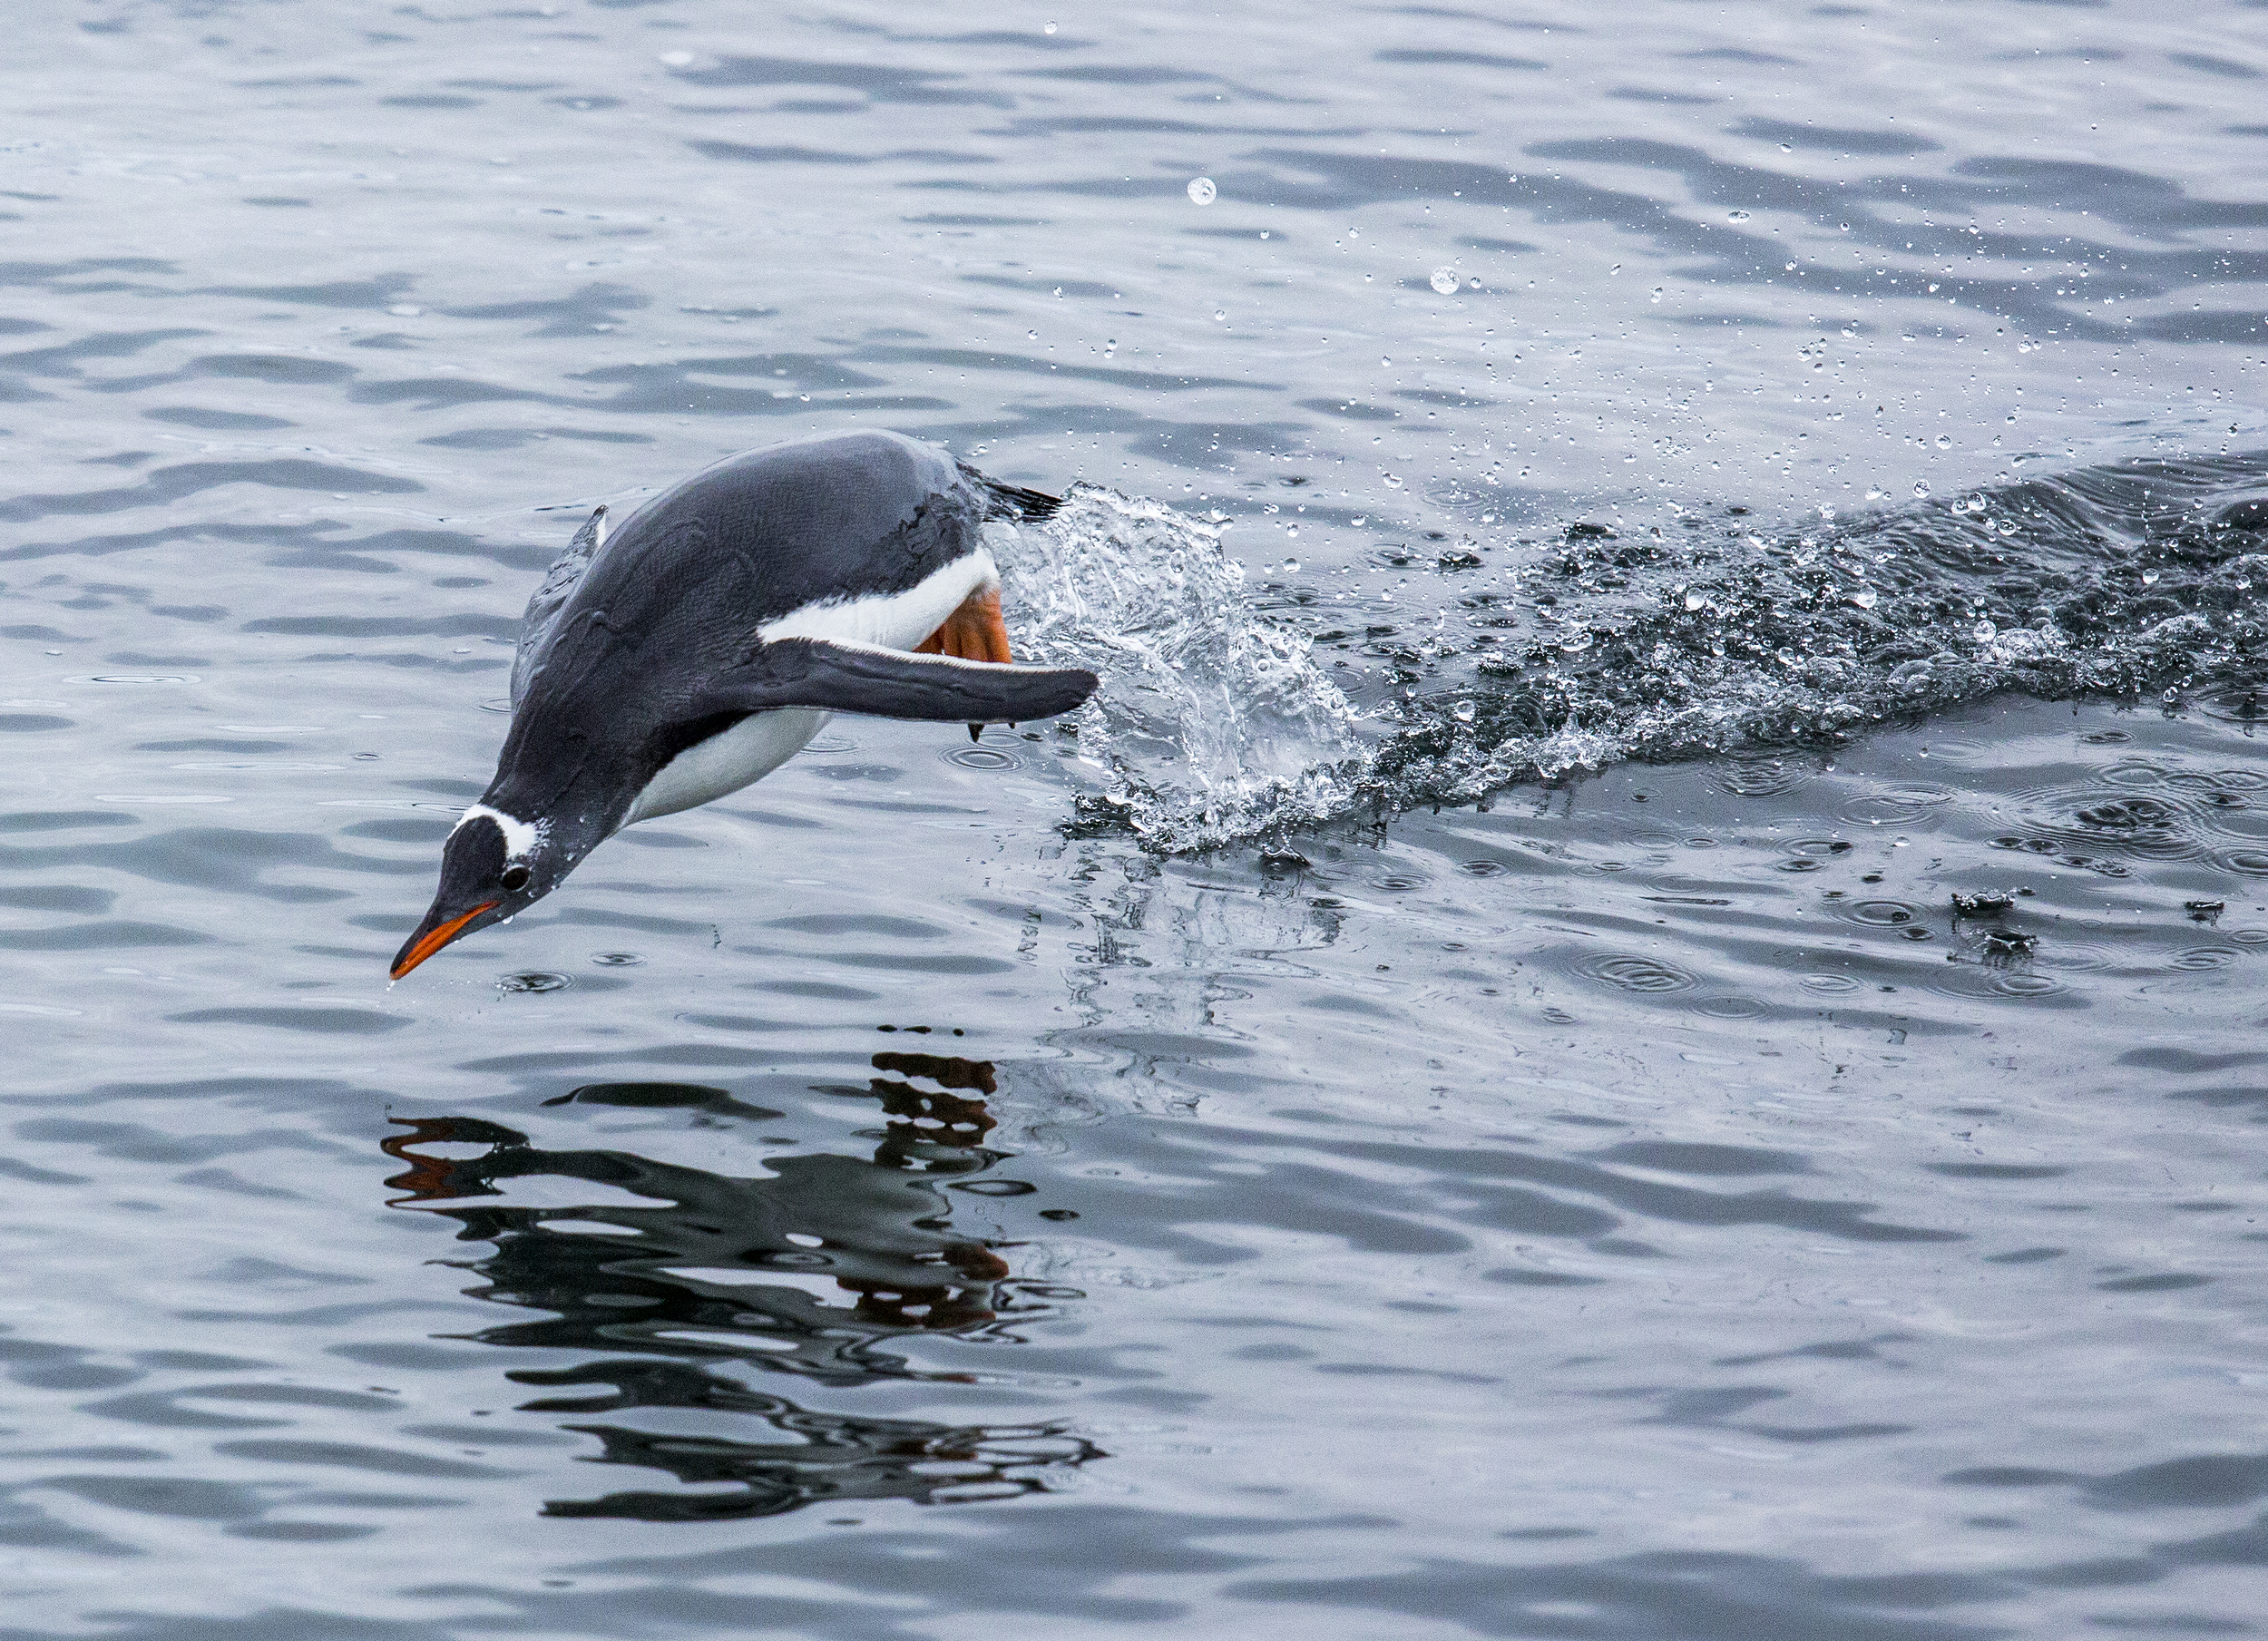 penguin diving into water